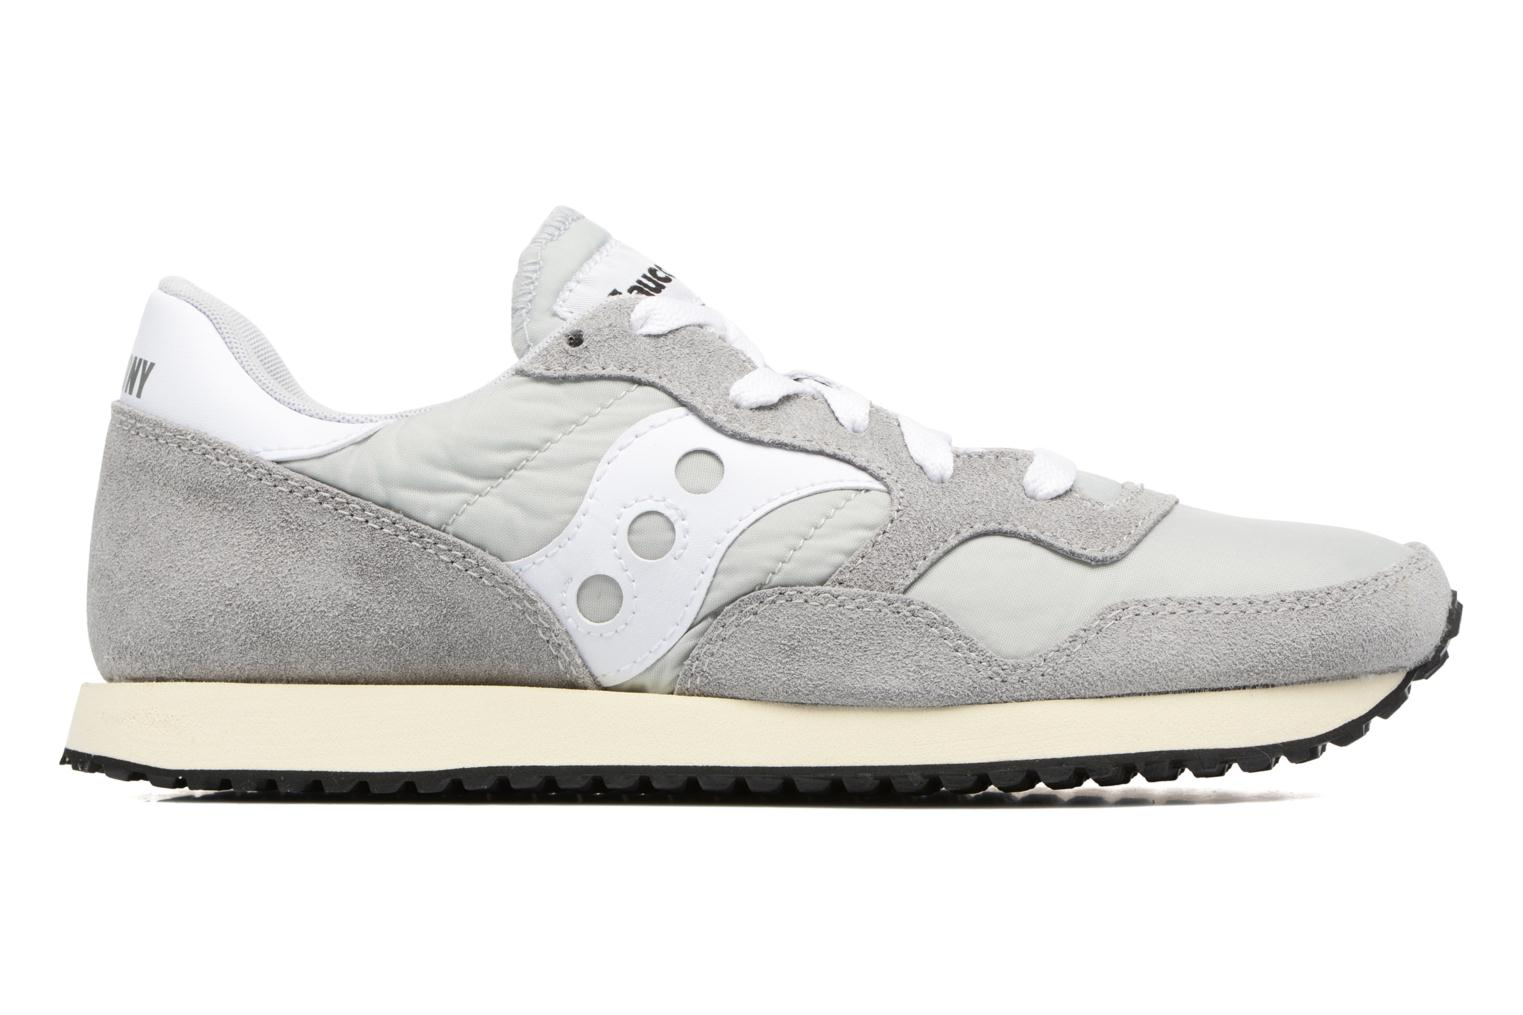 Dxn Saucony Trainer Grey Vintage White ZOkPiuX